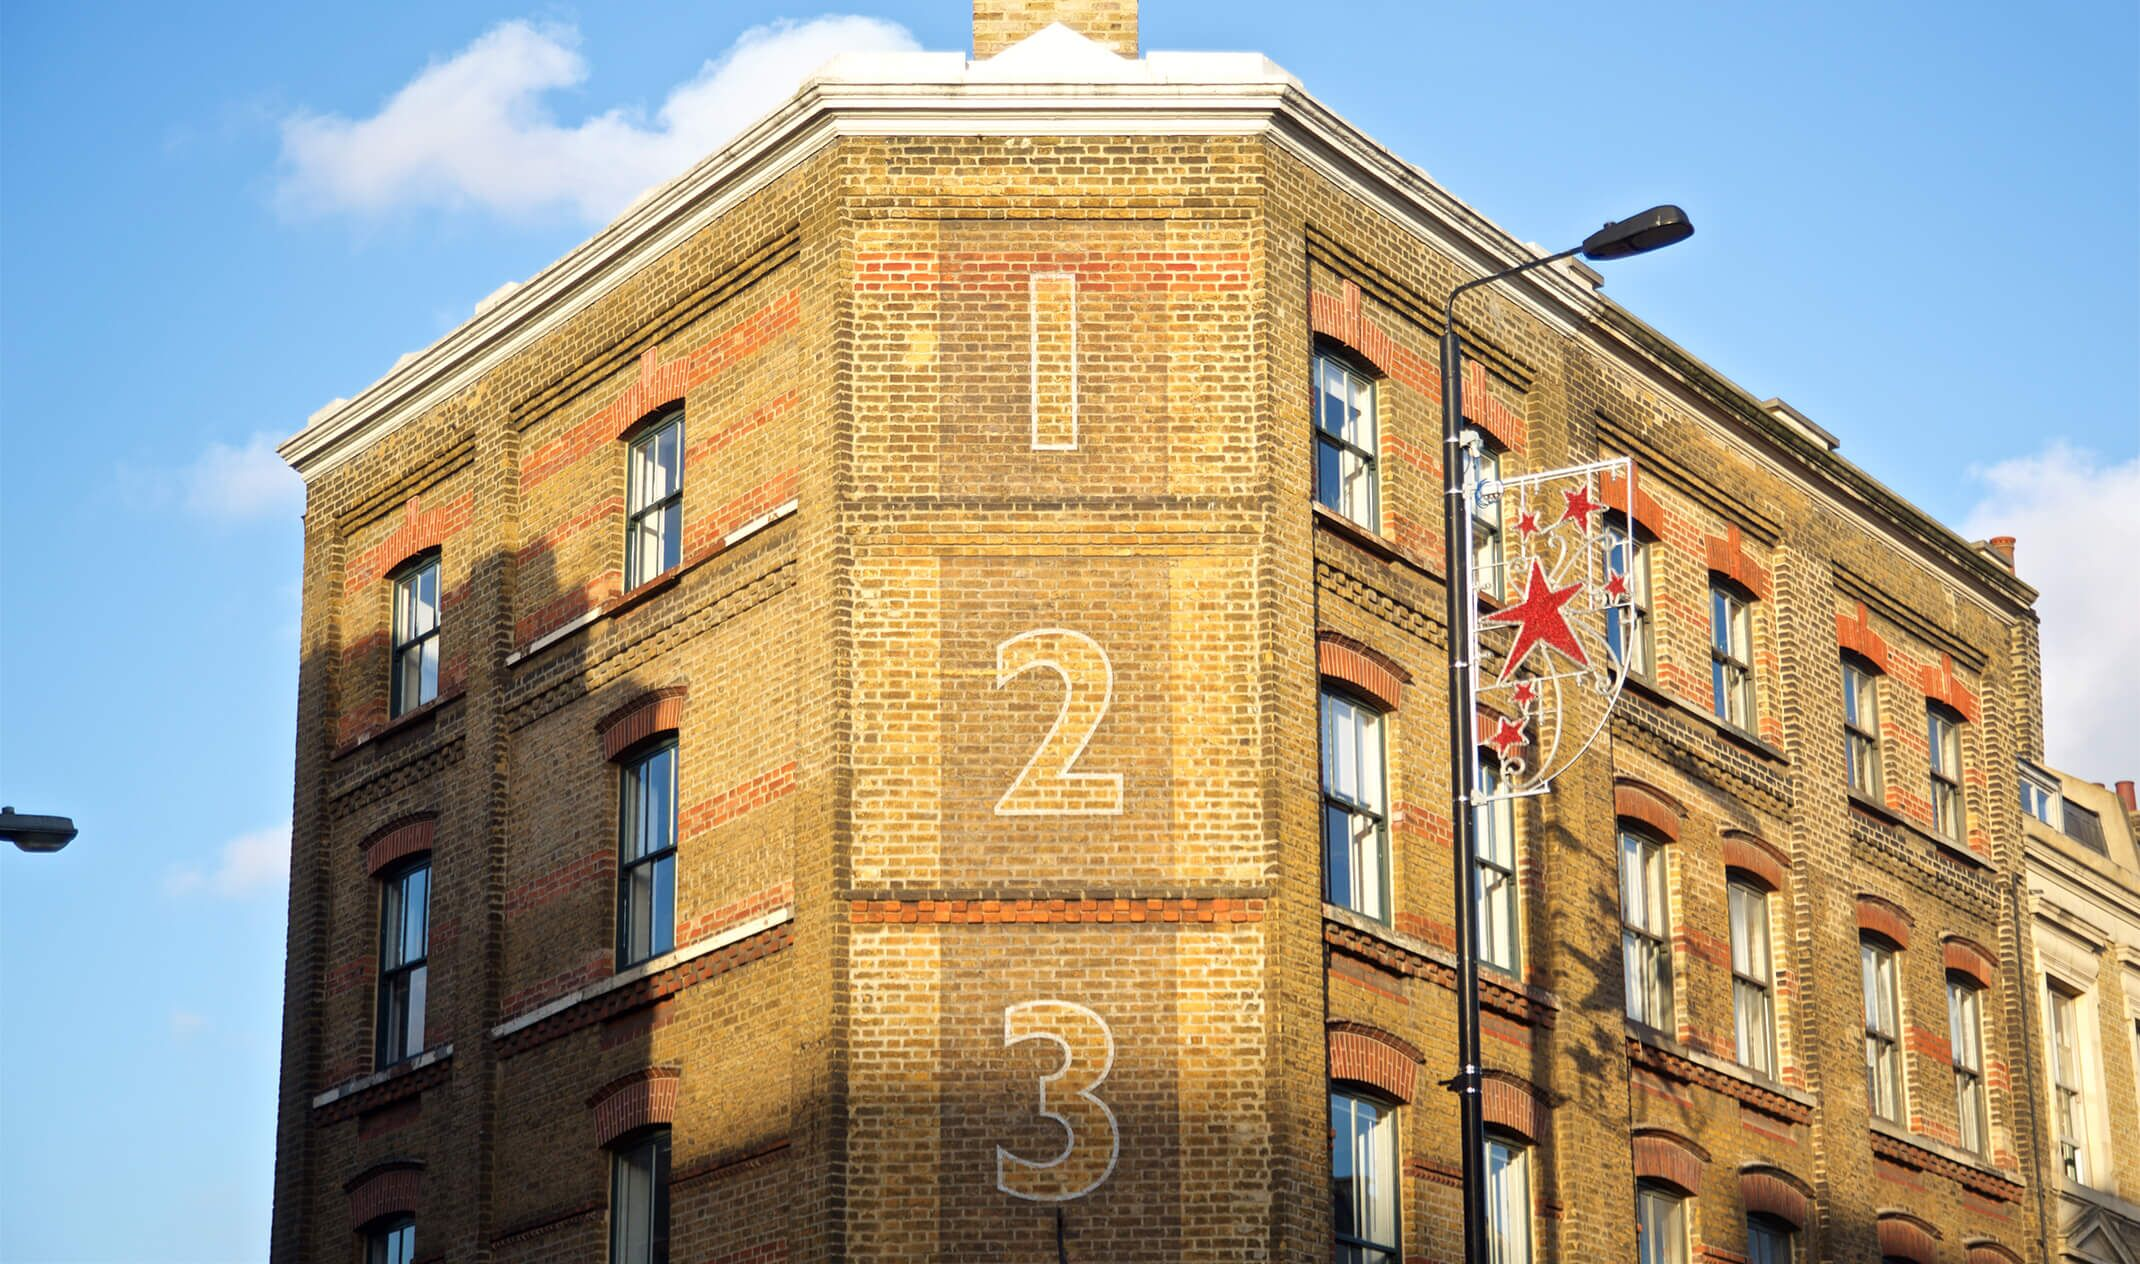 red brick building with one two three signage